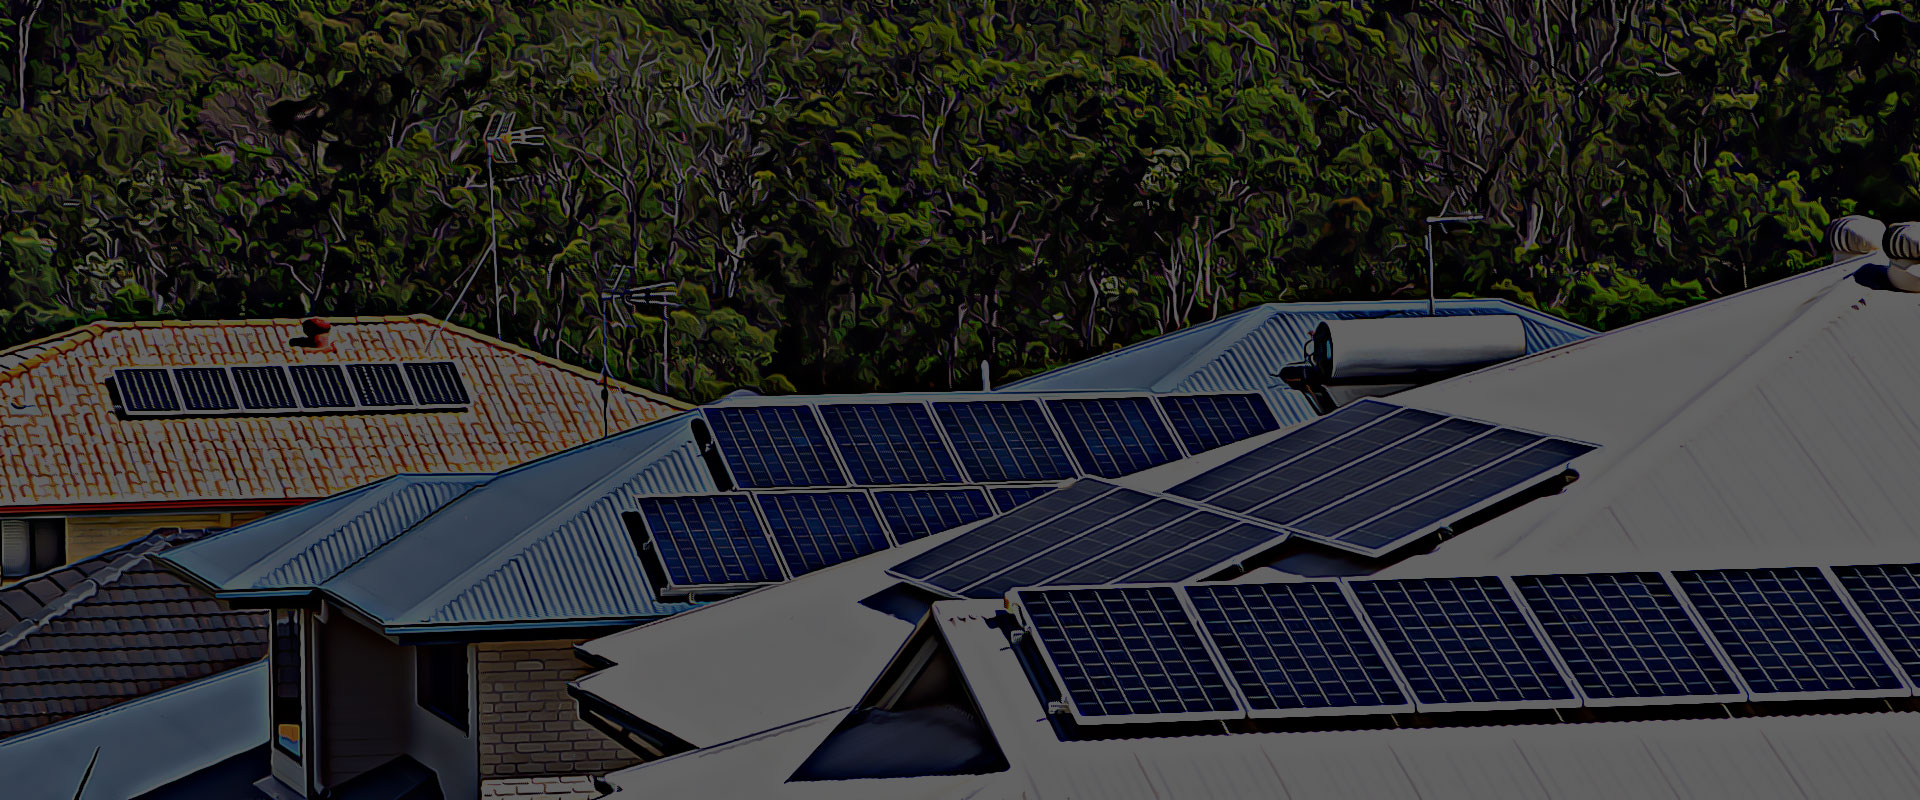 solar power rresidential roof tops and trees